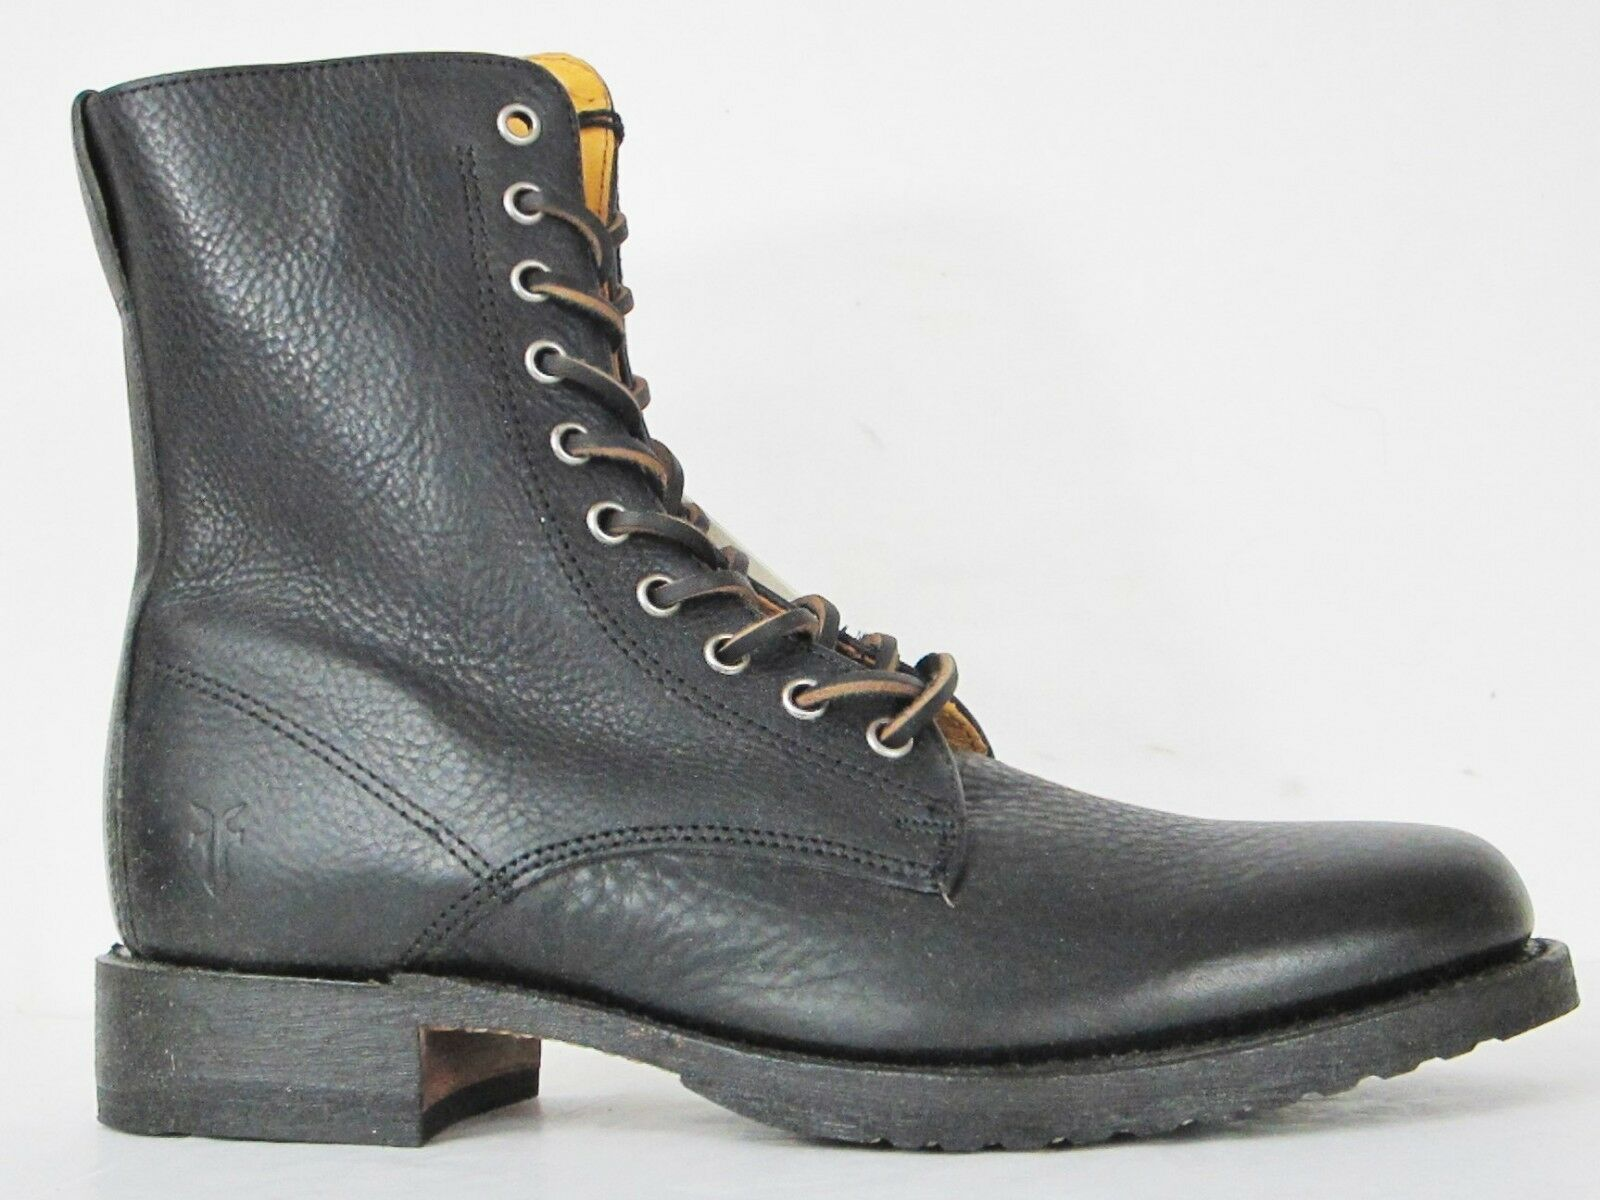 FRYE BOOTS Rand Lace Black Full Grain Leather Boots 87581 SZ 9  348